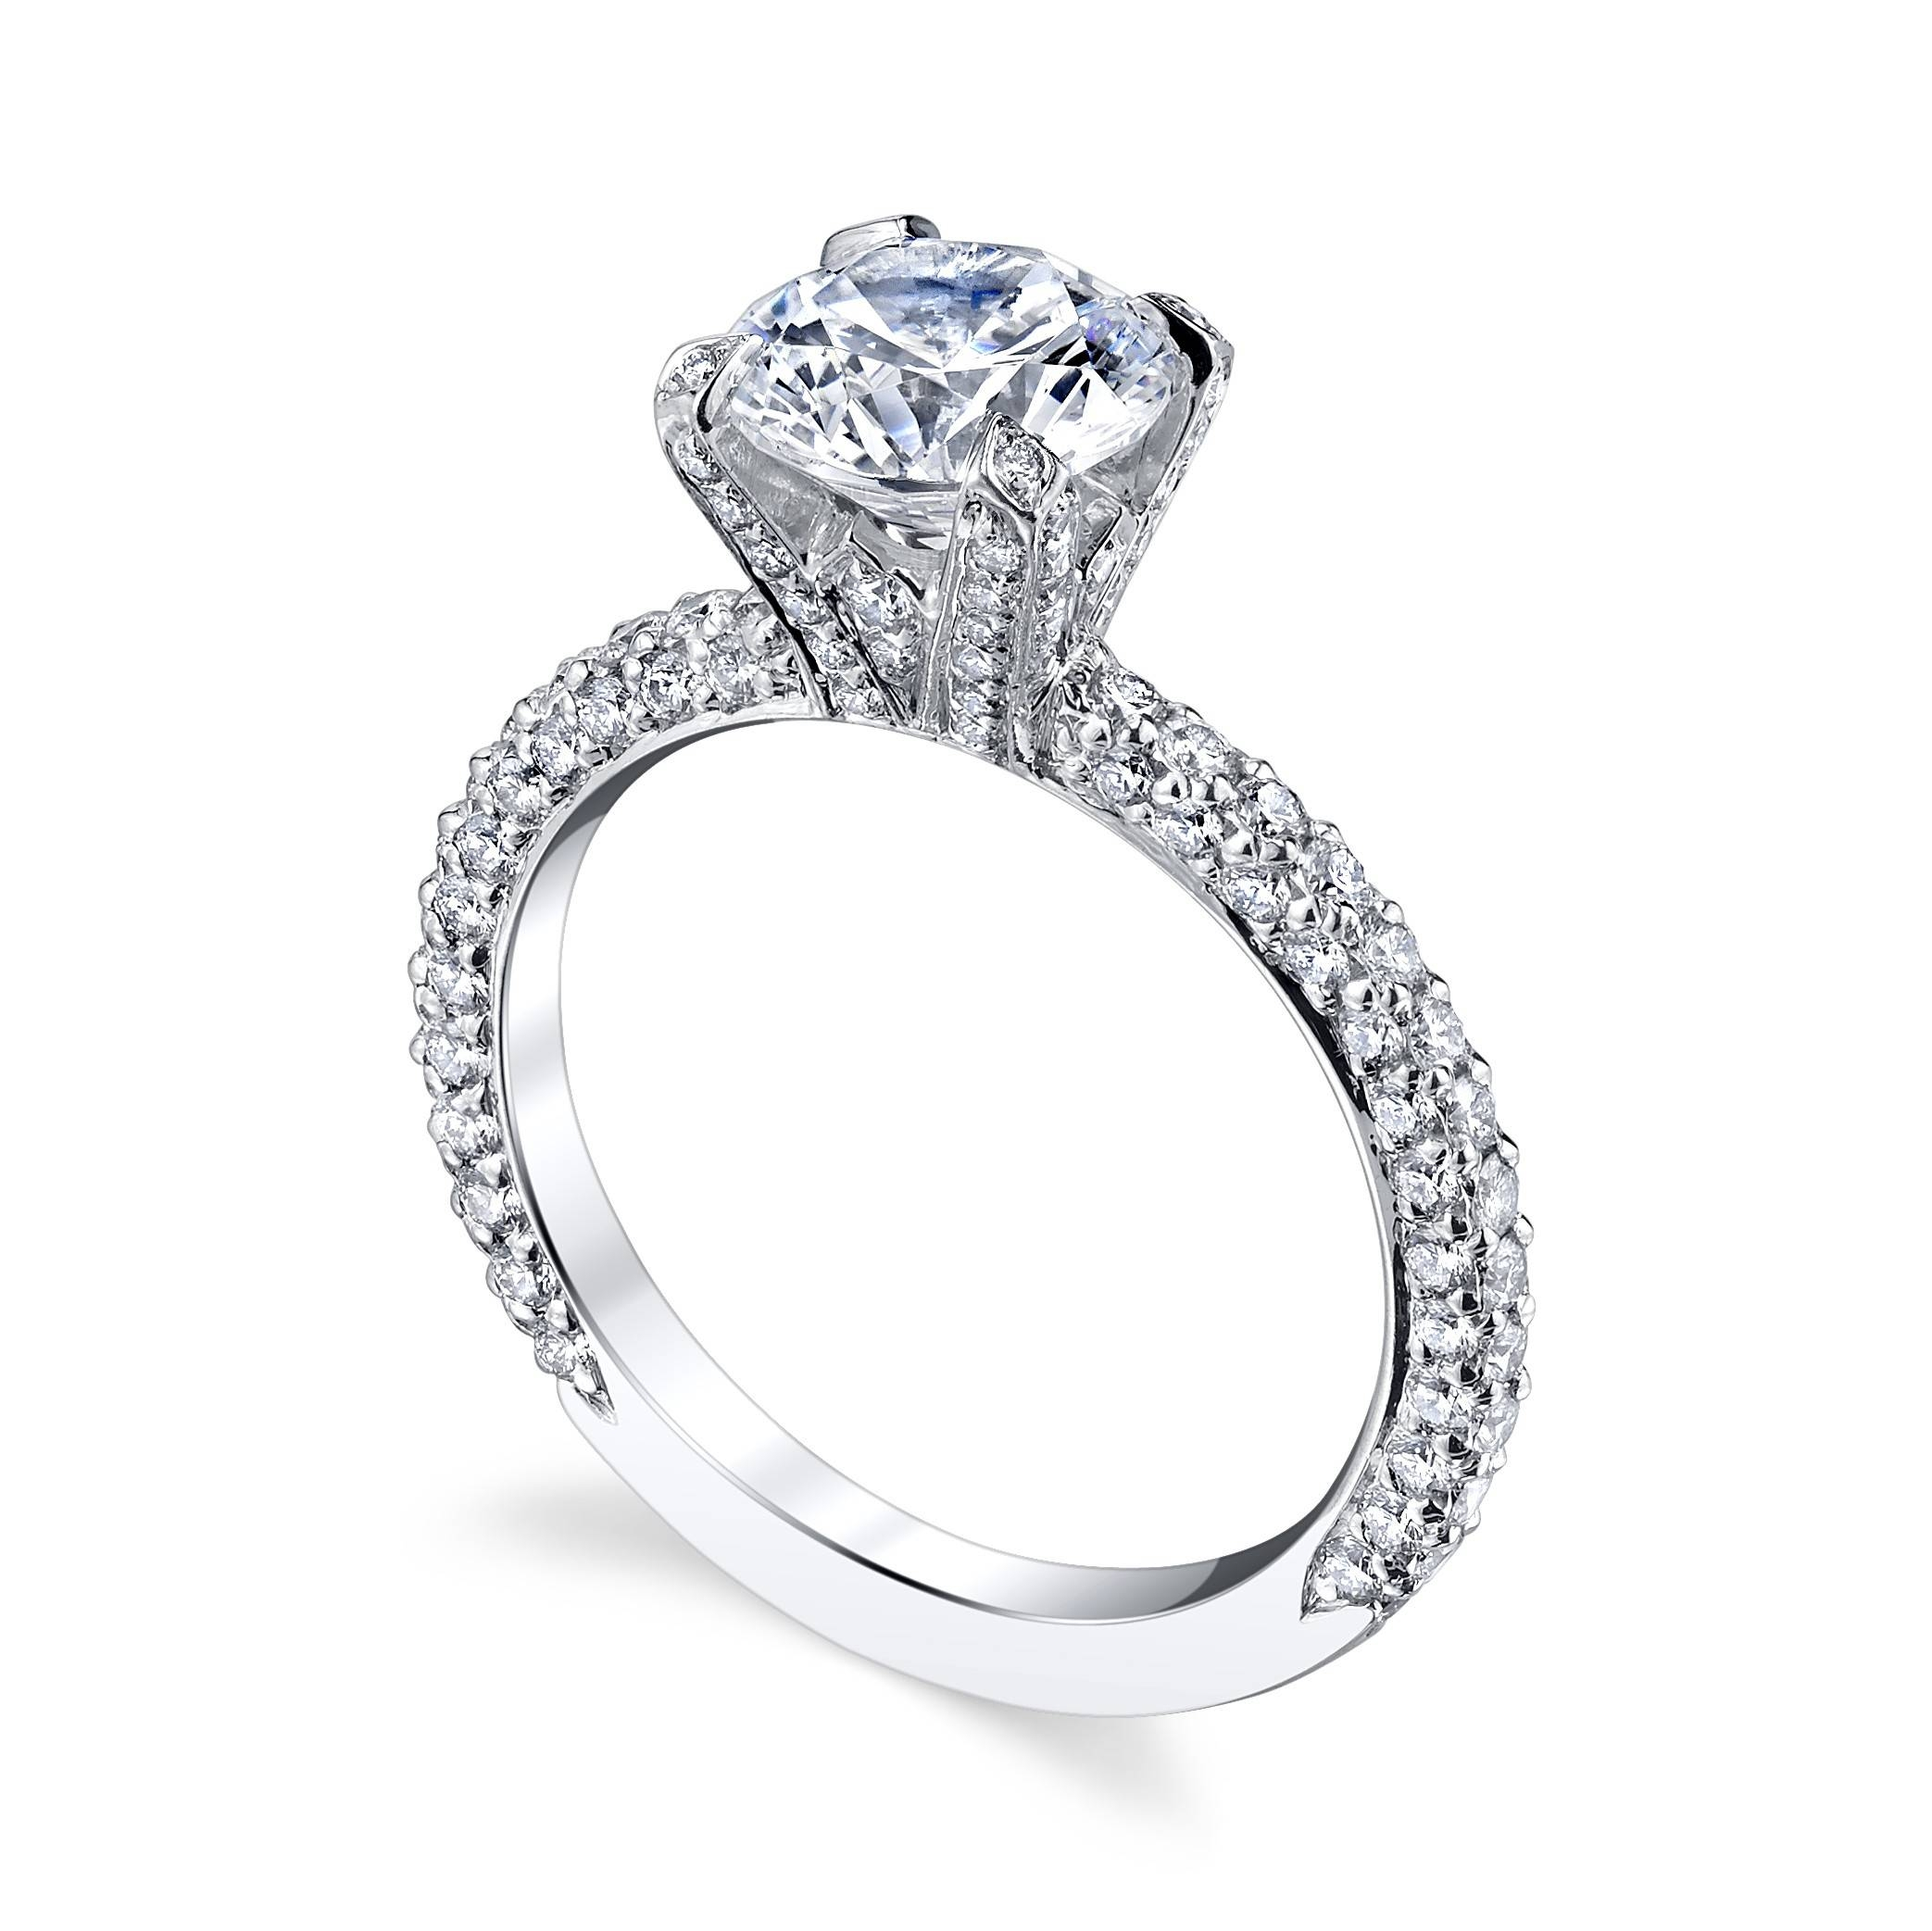 diamond the picking practical best well of jewellery every settings dividing alt as engagement easier by diamonds variety lot will simpler process into a ring setting factors be down